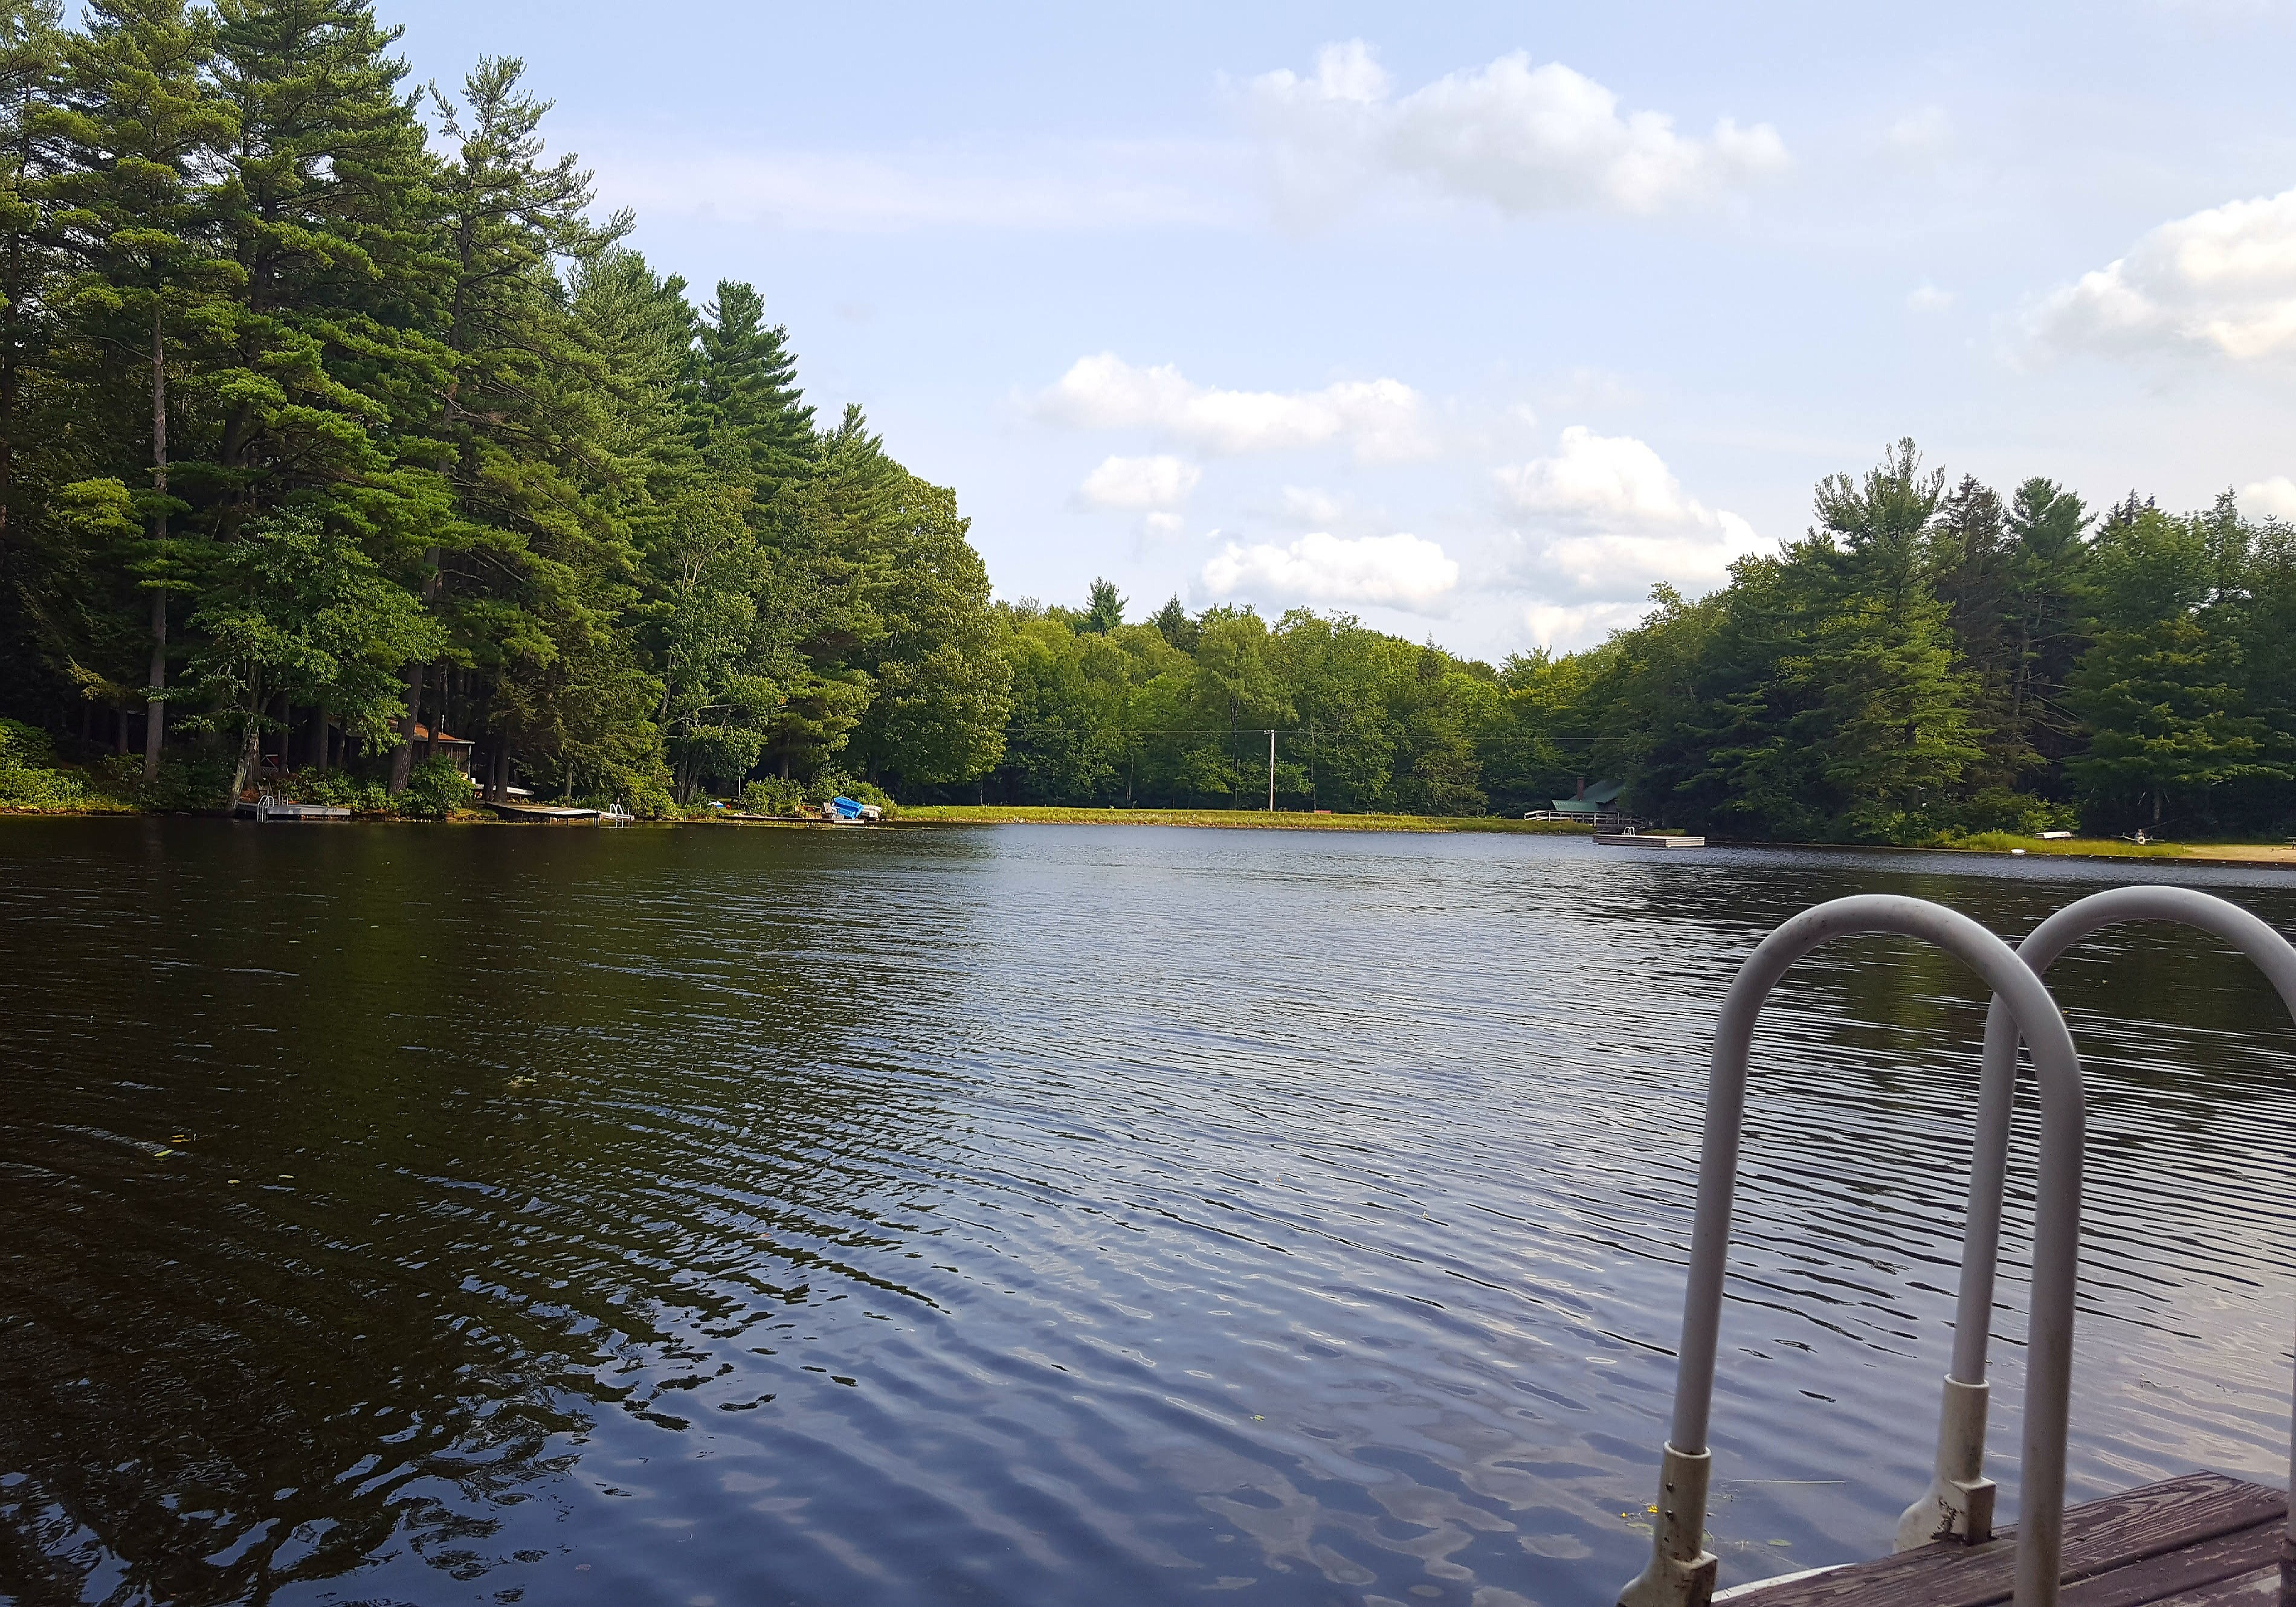 On Damon Pond